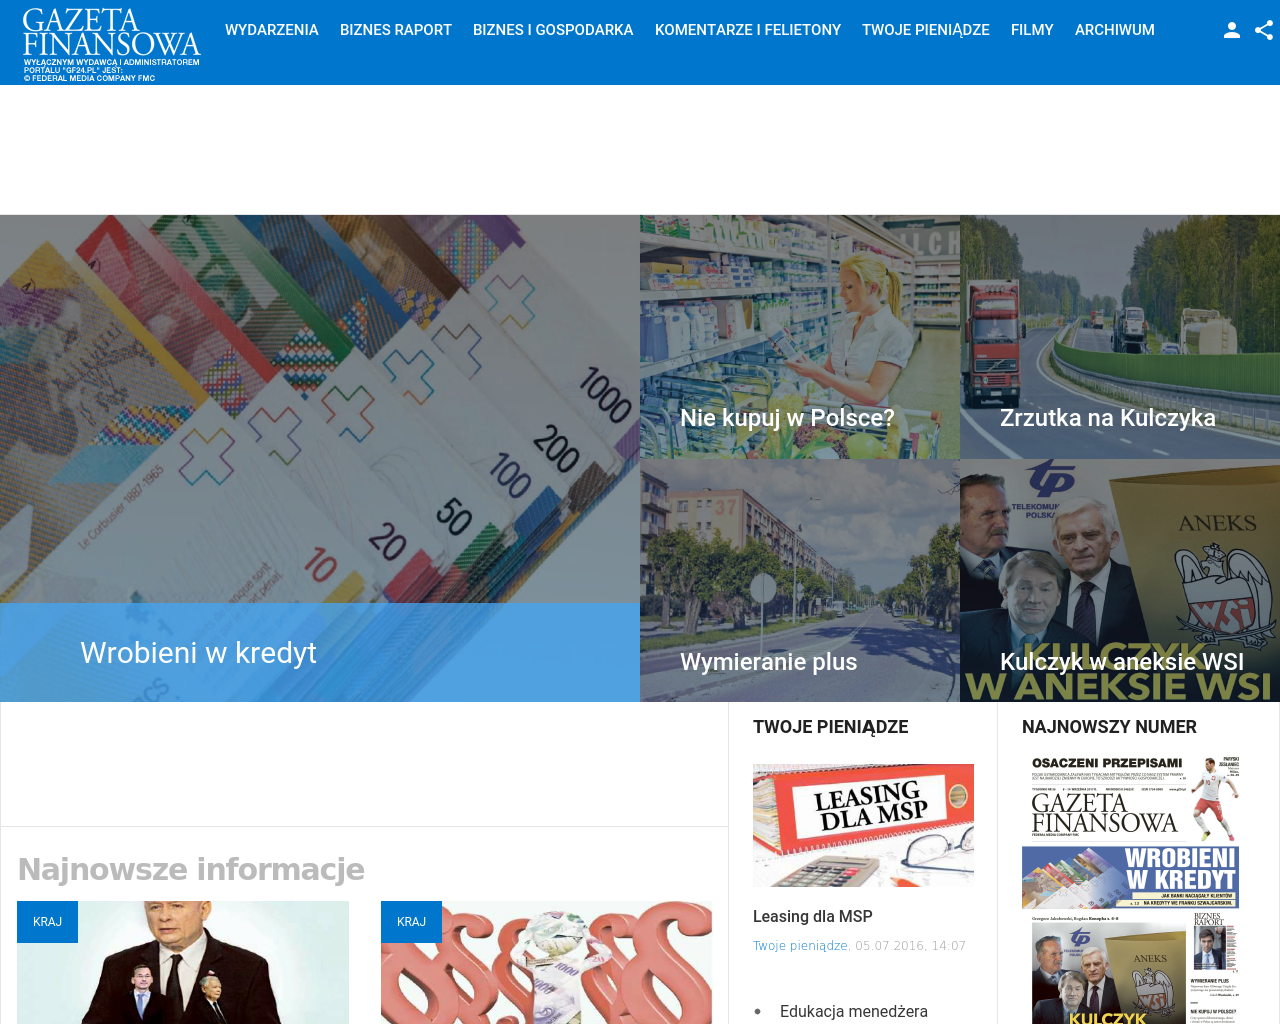 Gazeta-Finansowa-Advertising-Reviews-Pricing